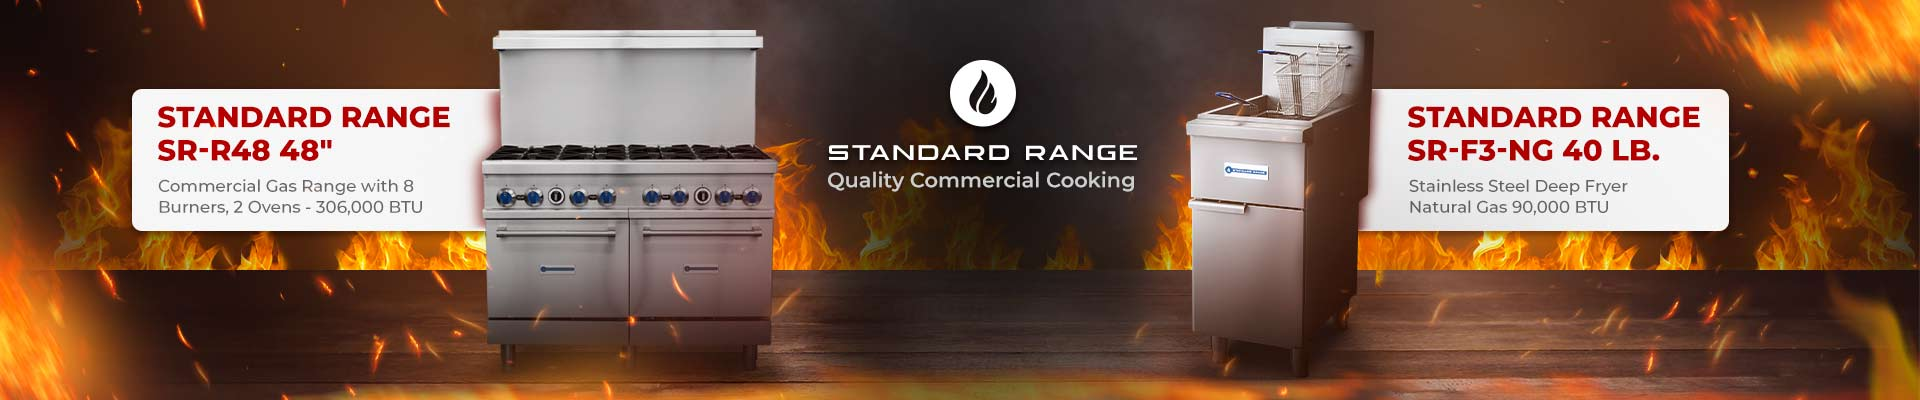 Standard Range Restaurant Ranges and Fryers